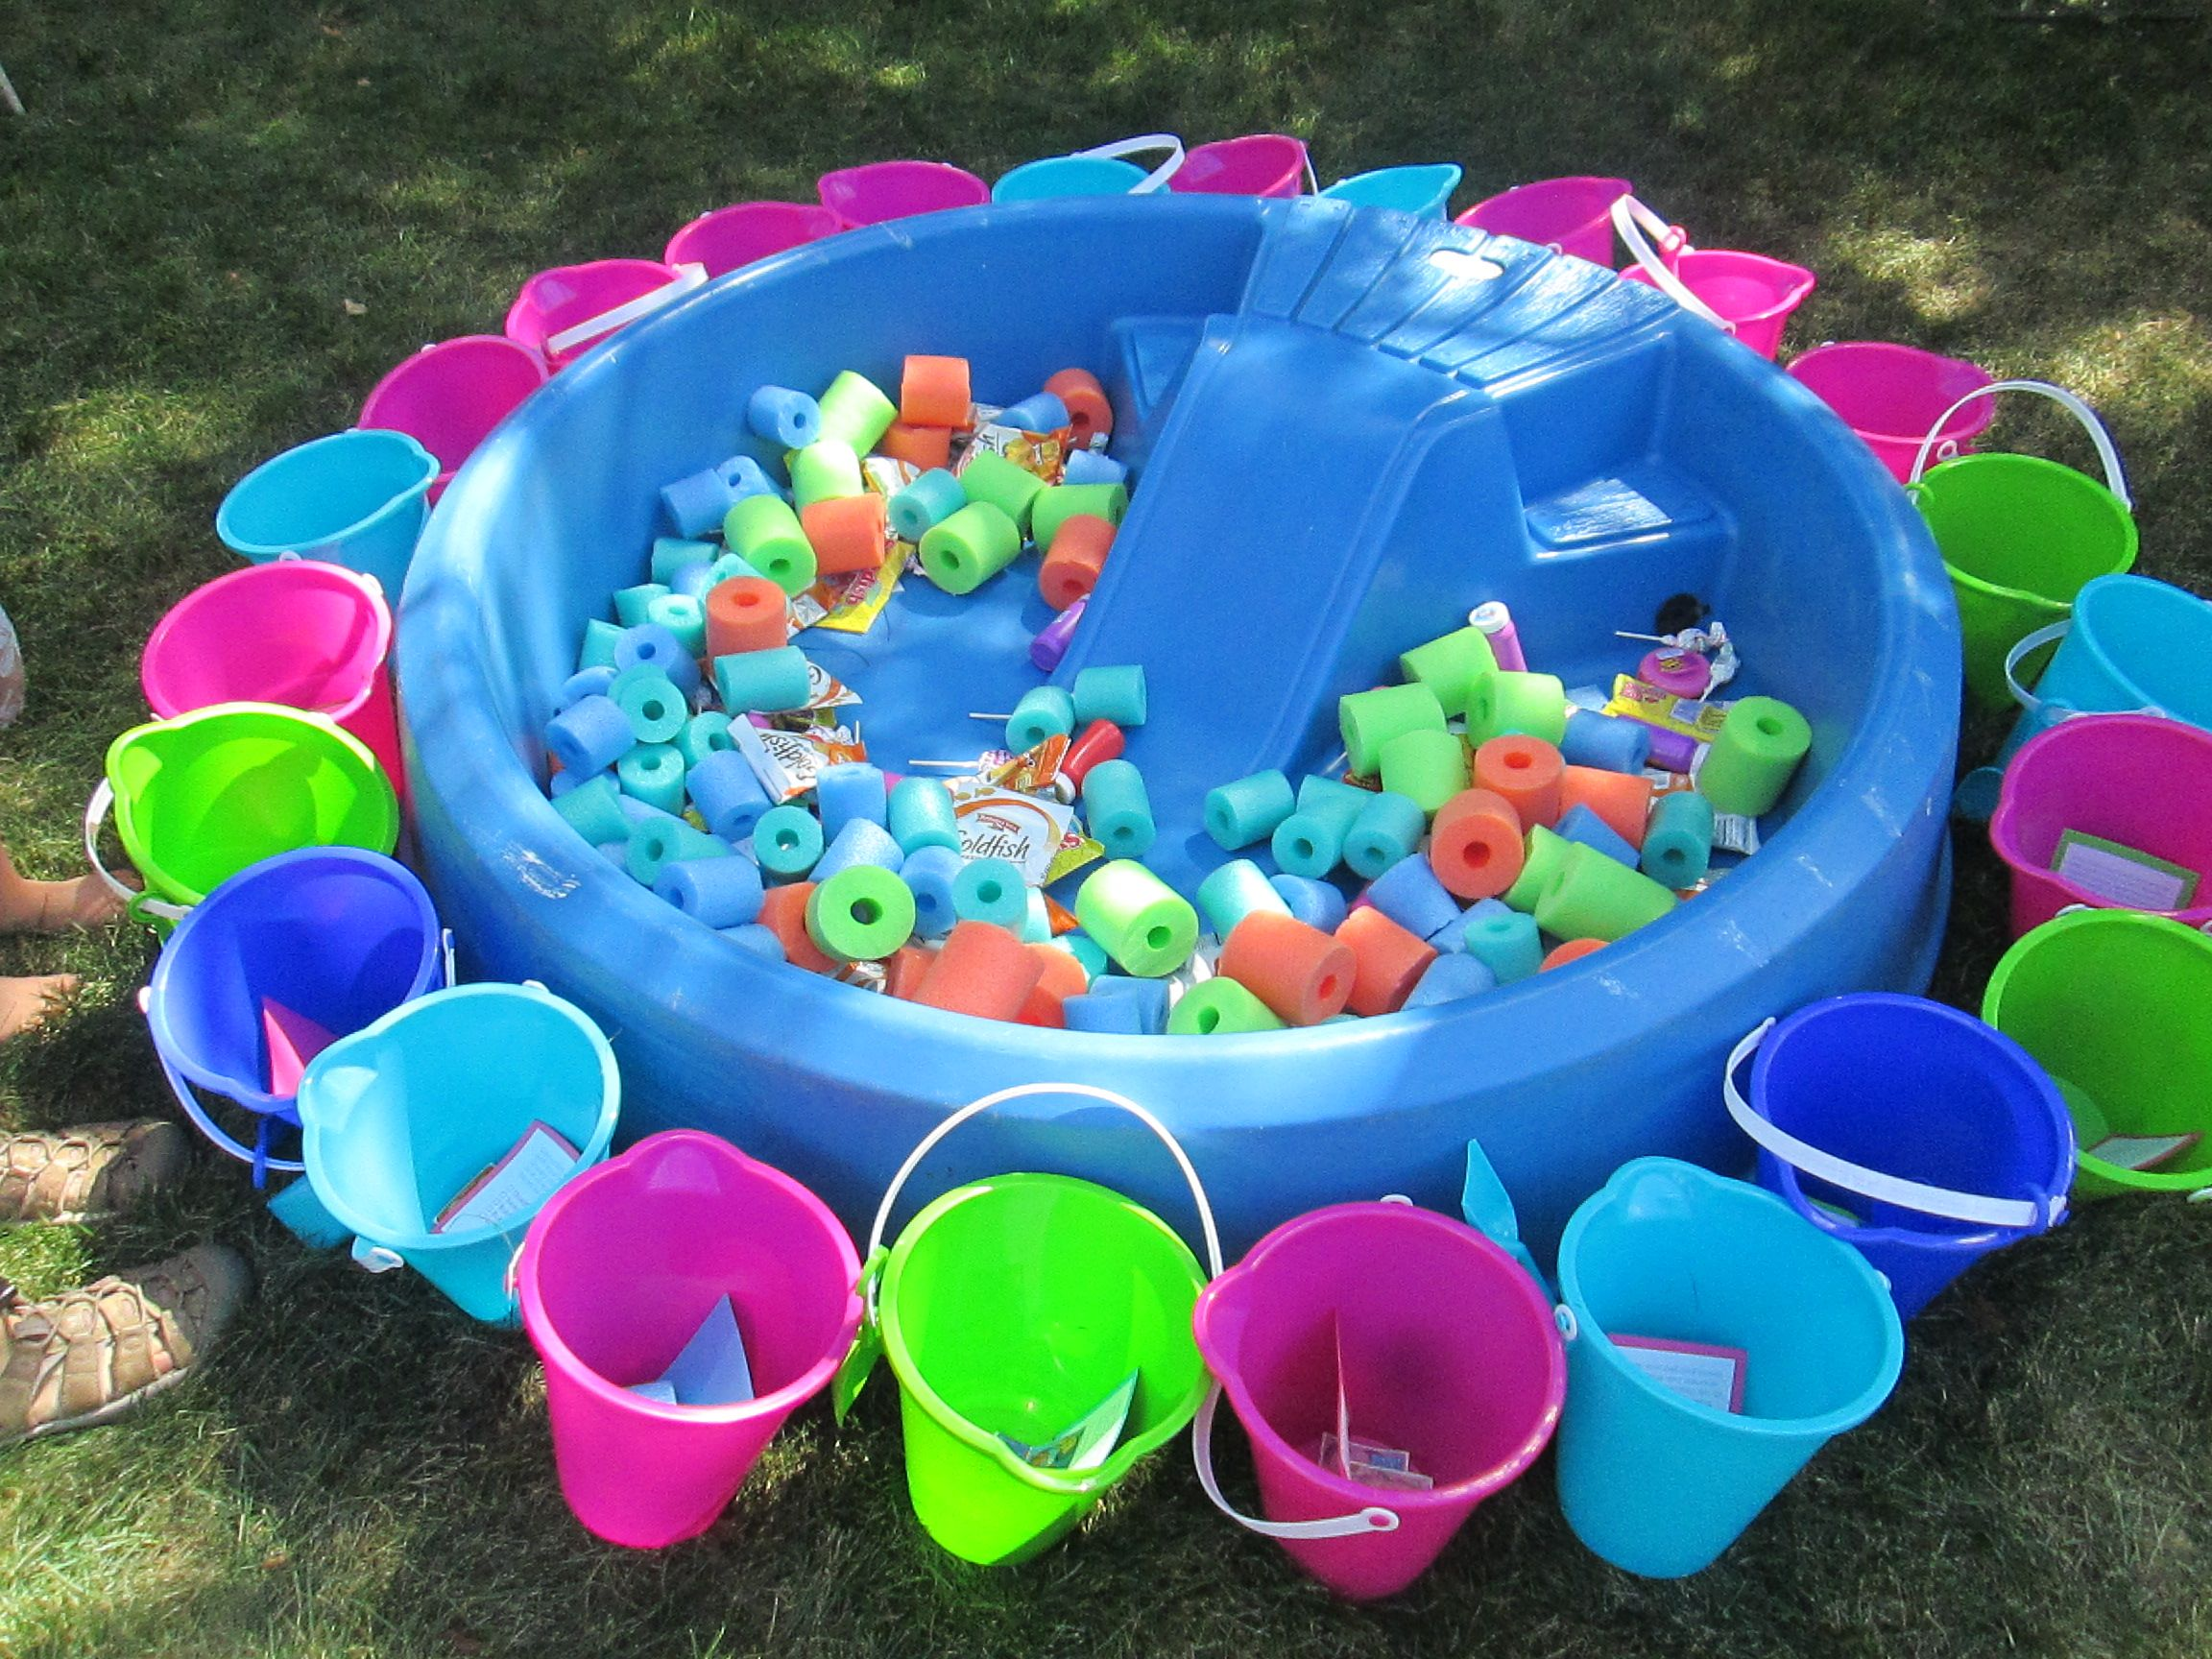 Pool Party Ideas Kids adult pool party ideas pool party fun for kids teens adults Find This Pin And More On Bubble Guppiespool Party